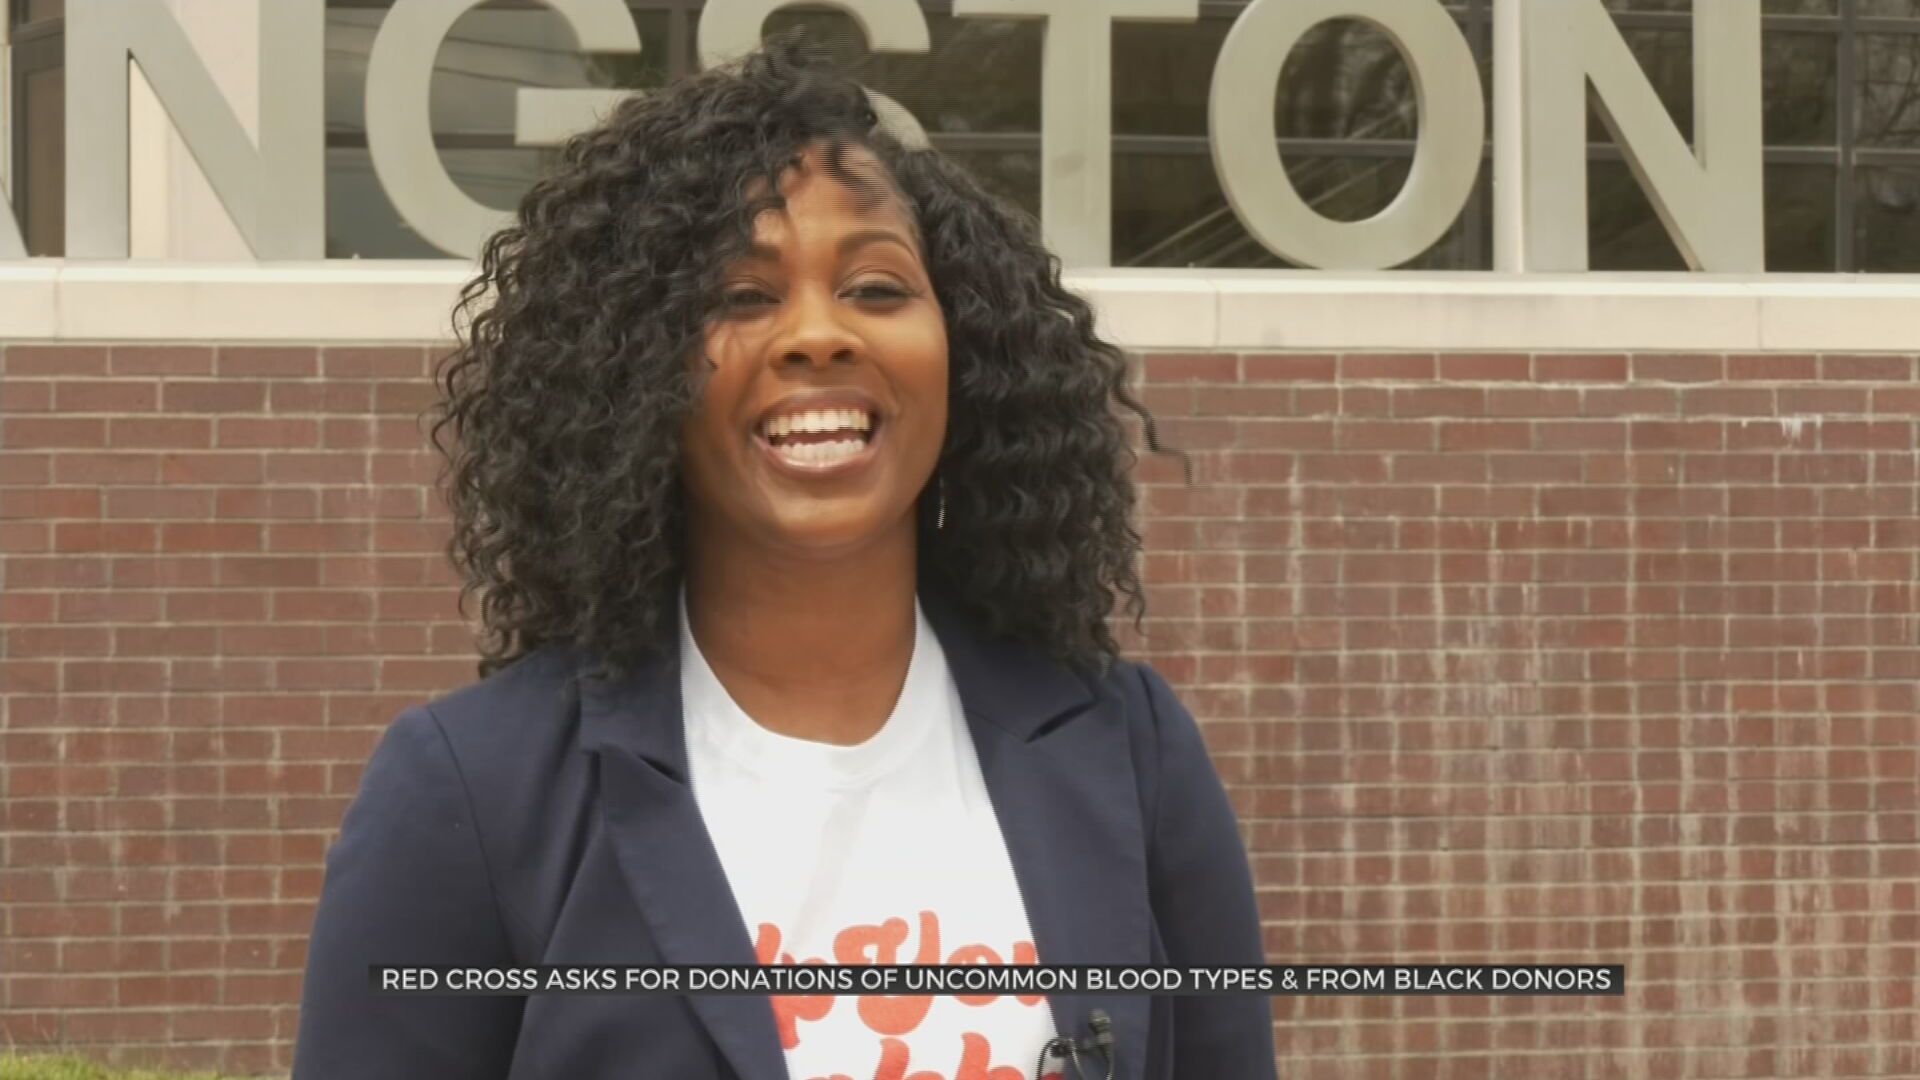 Red Cross In Desperate Need Of 'Life-Saving' Blood Donations From Black Donors